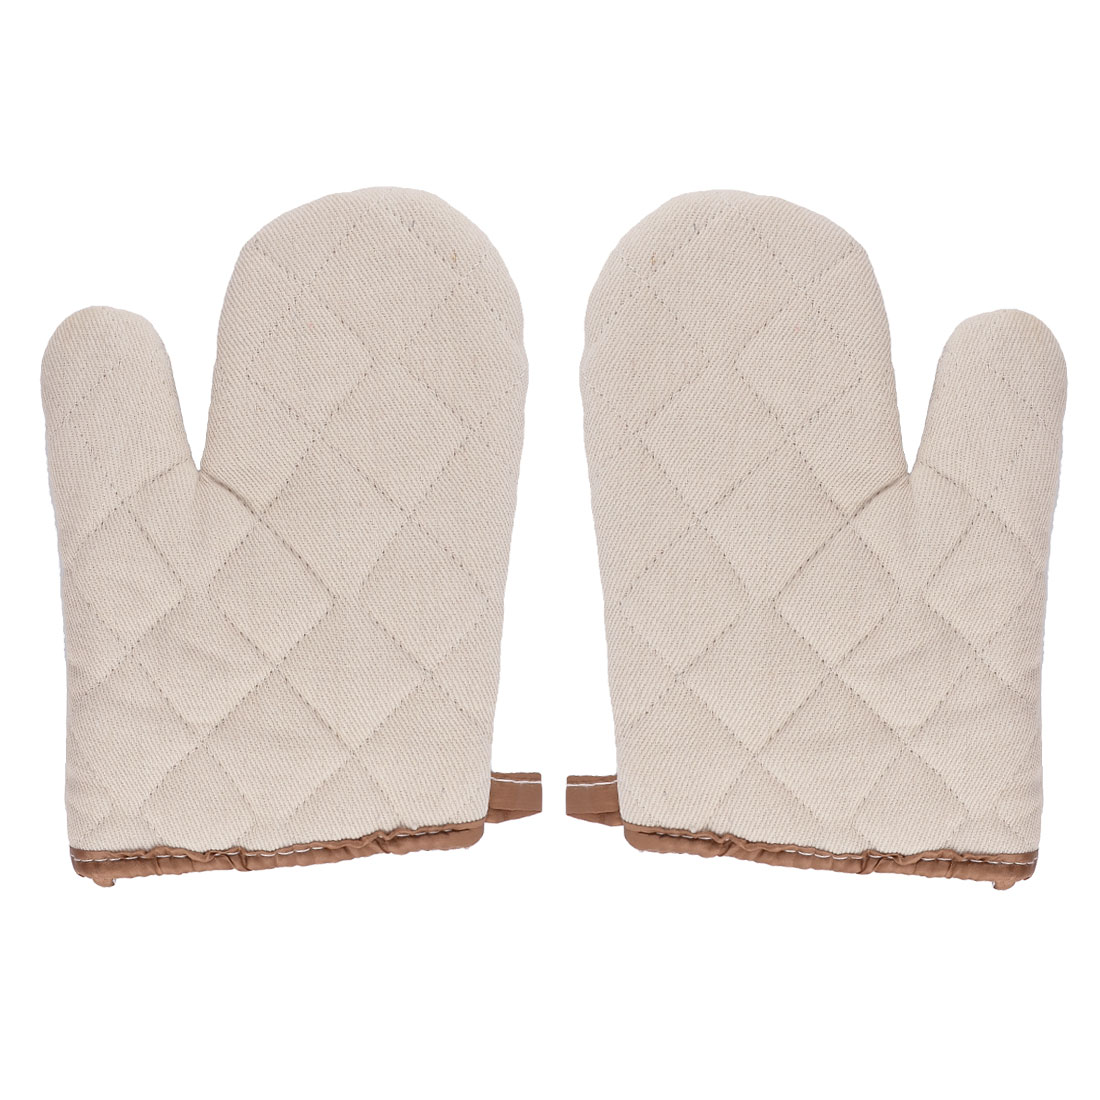 Kitchen Bakery Heat Hot Resistance Microwave Grilling Baking Oven Mitt Gloves